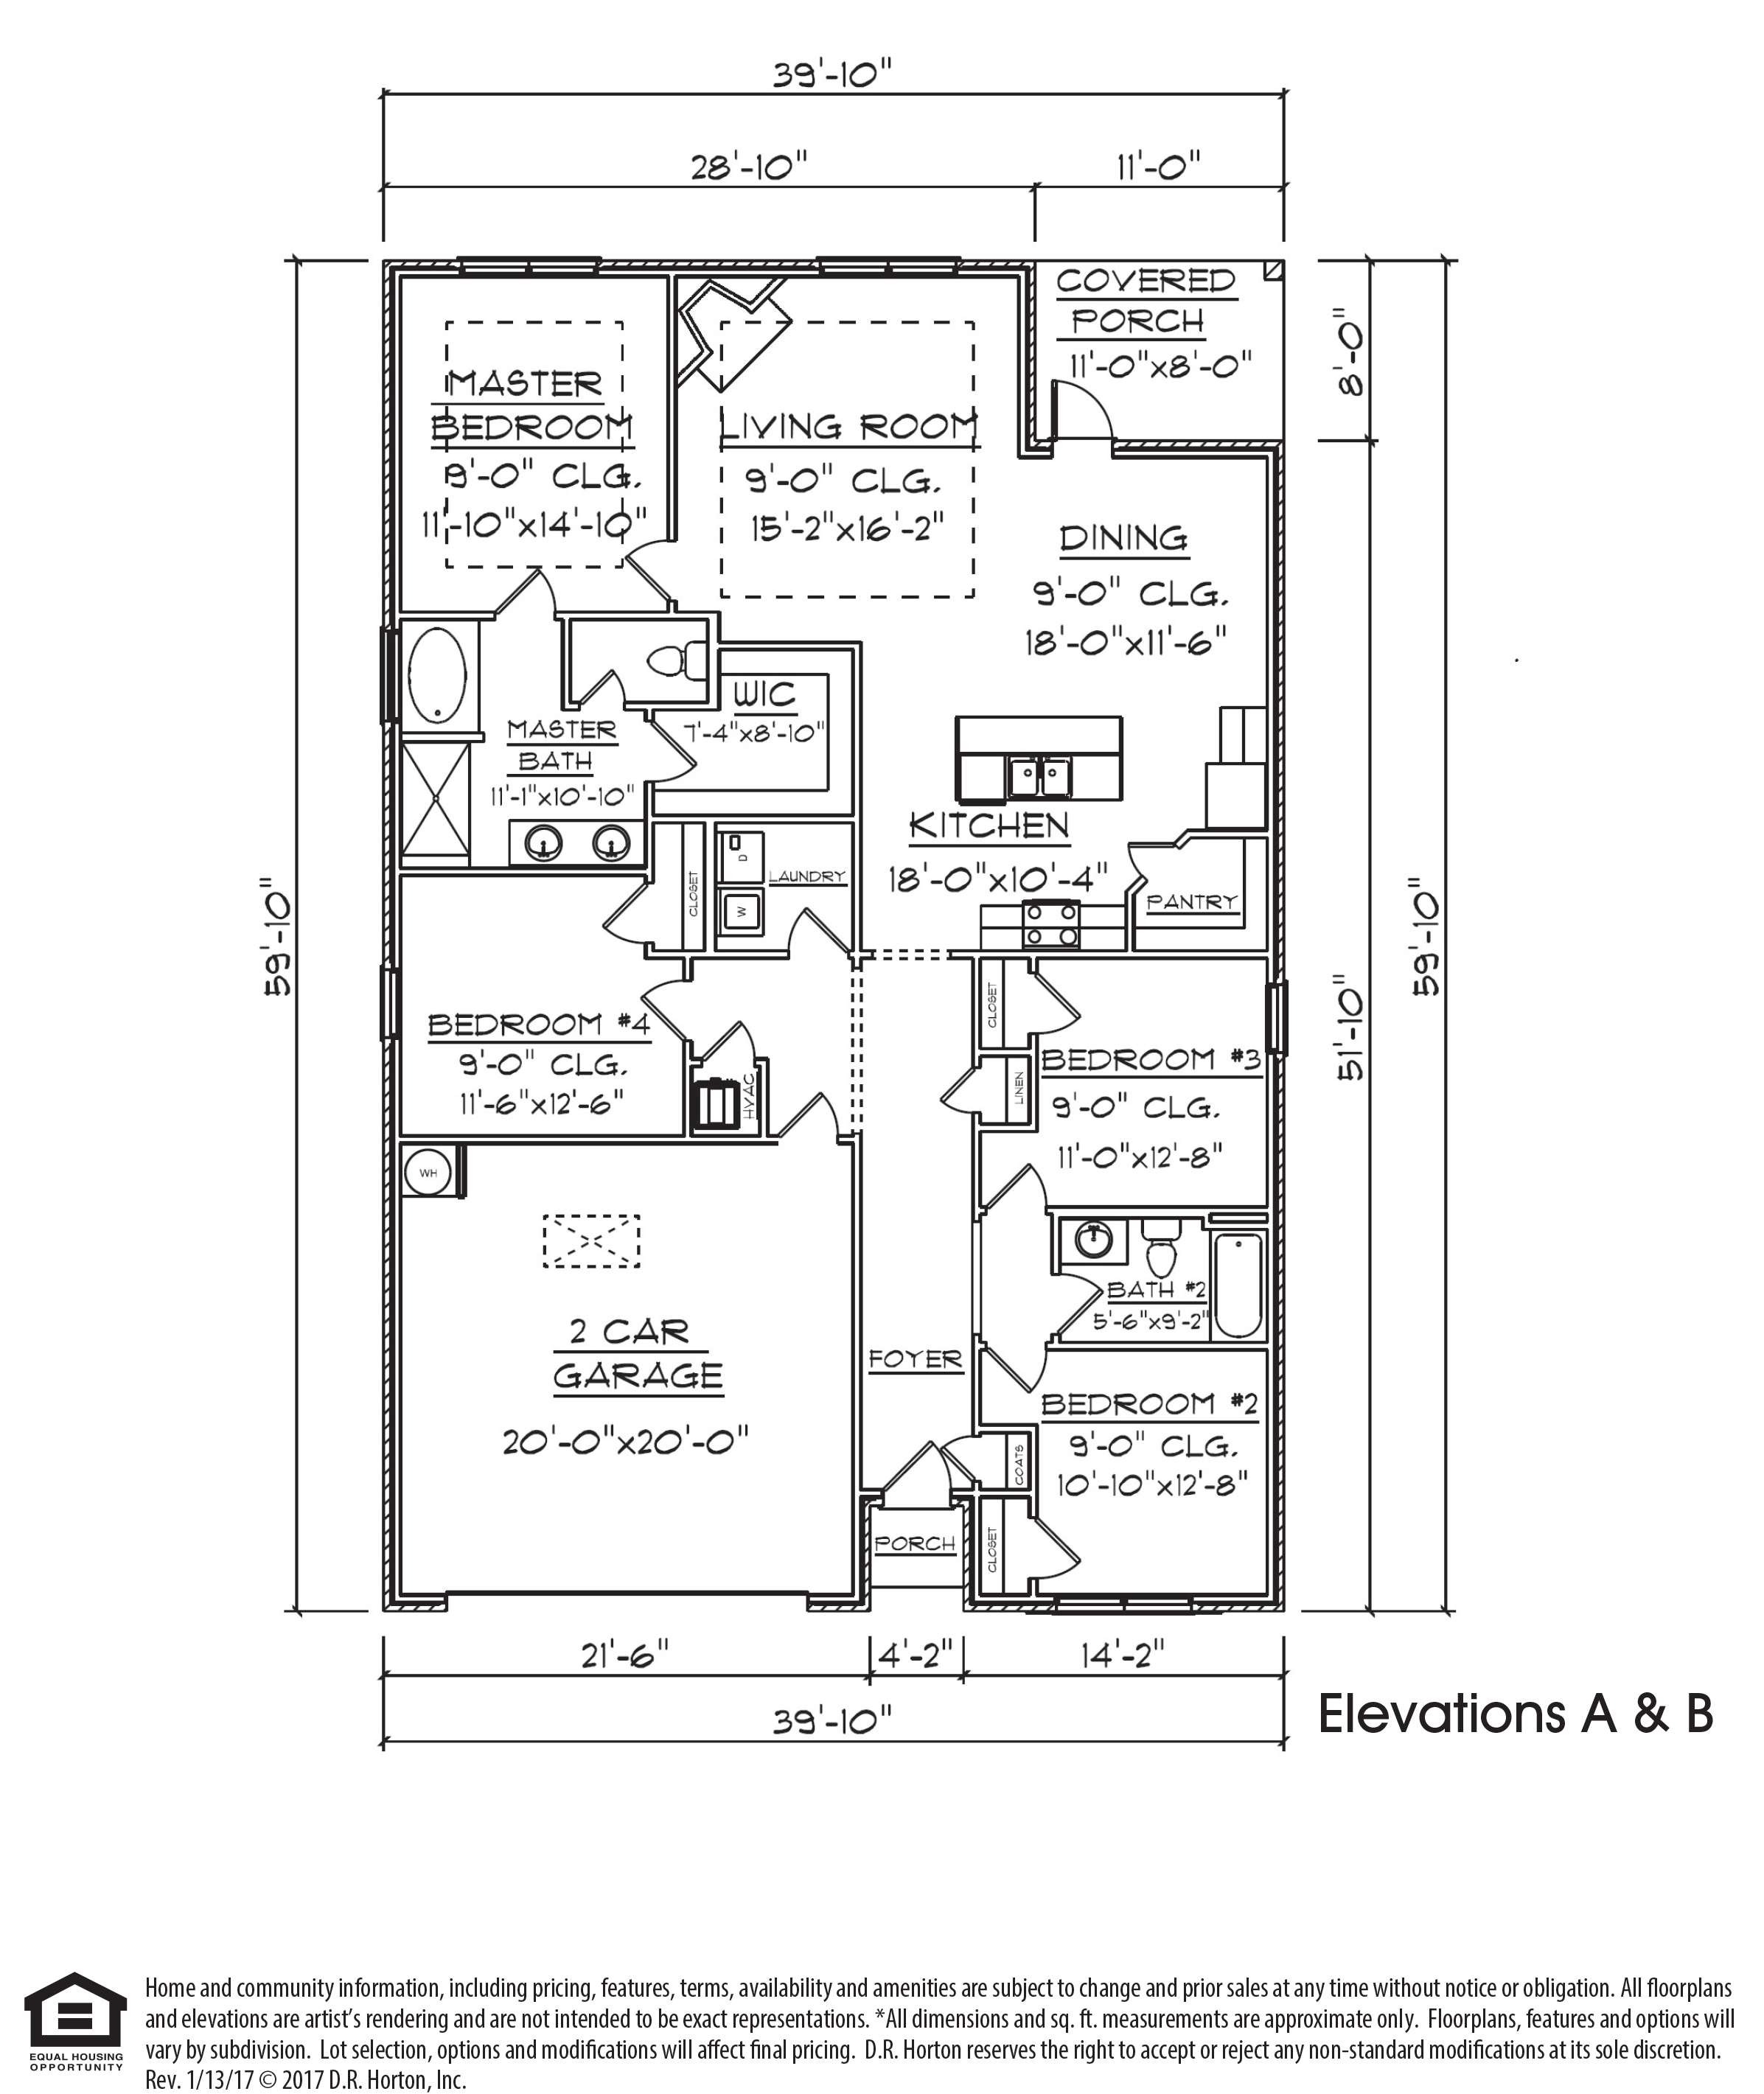 Rhett floor plan features 1,863 square feet with 4 bedrooms and 2 bathrooms